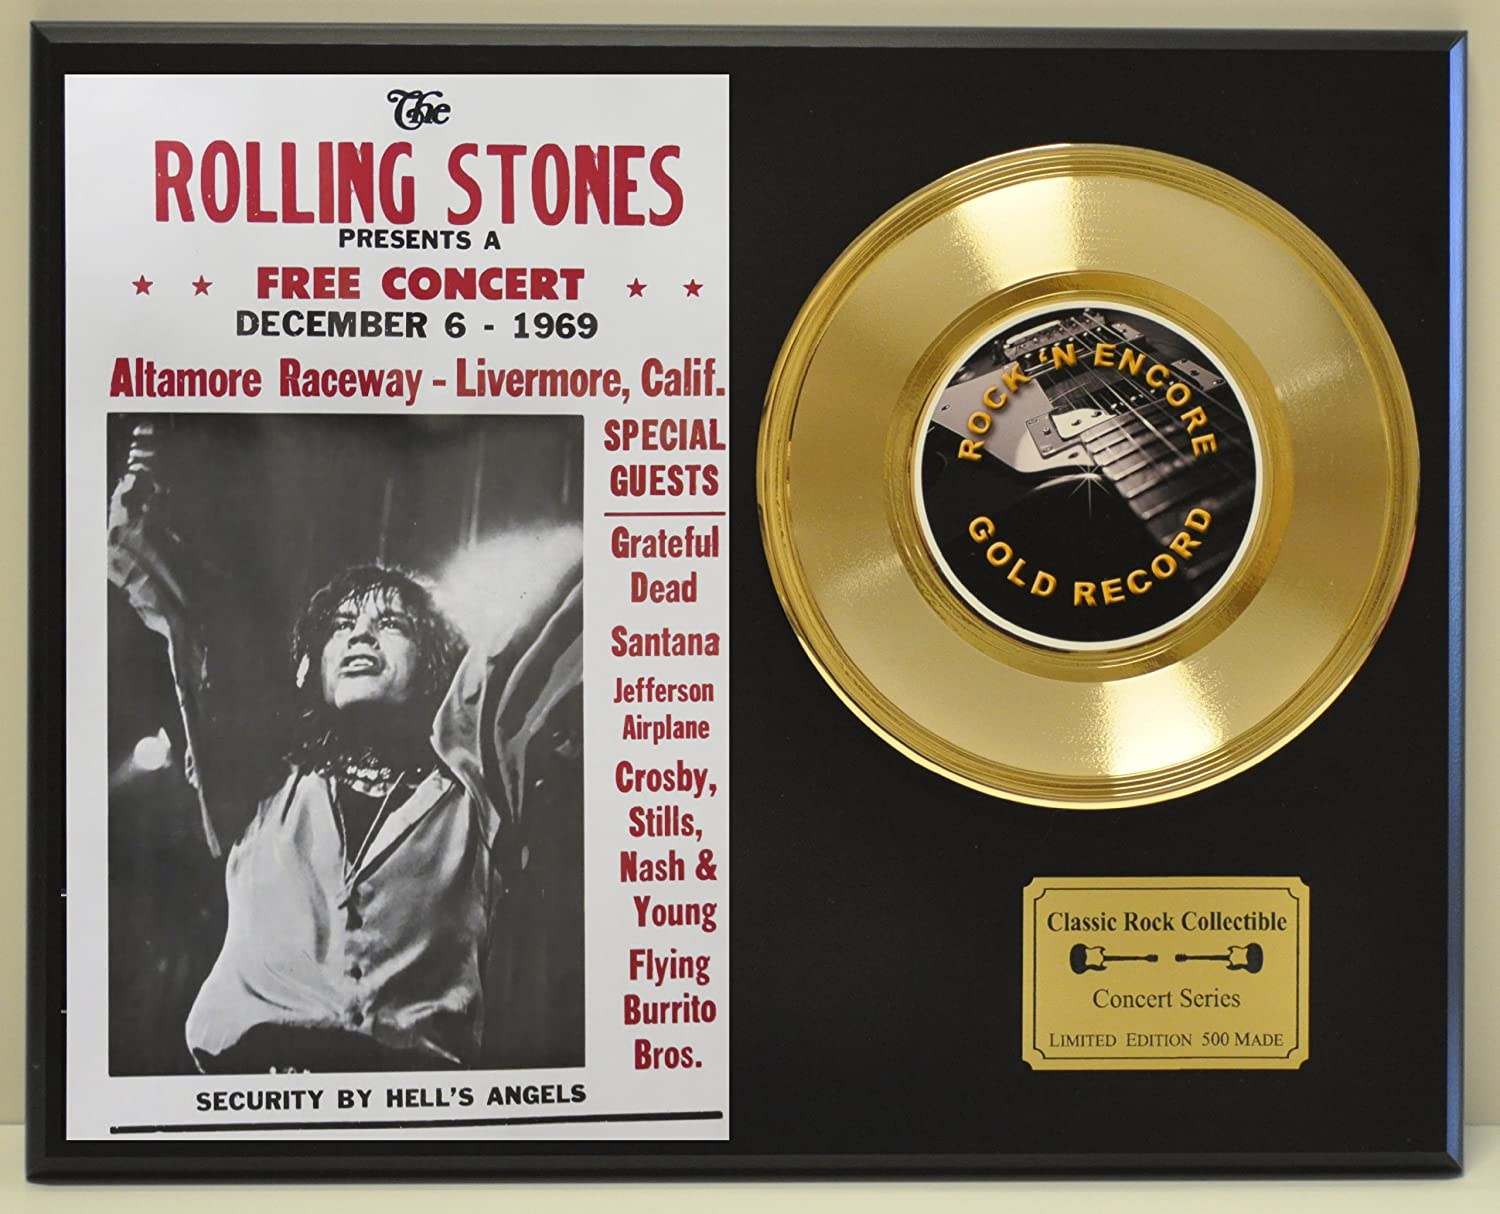 B00DTVF37M ROLLING STONES Limited Edition 45 Record Display. Only 500 made. Limited quanities. FREE US SHIPPING 919W4auiAXL.SL1500_